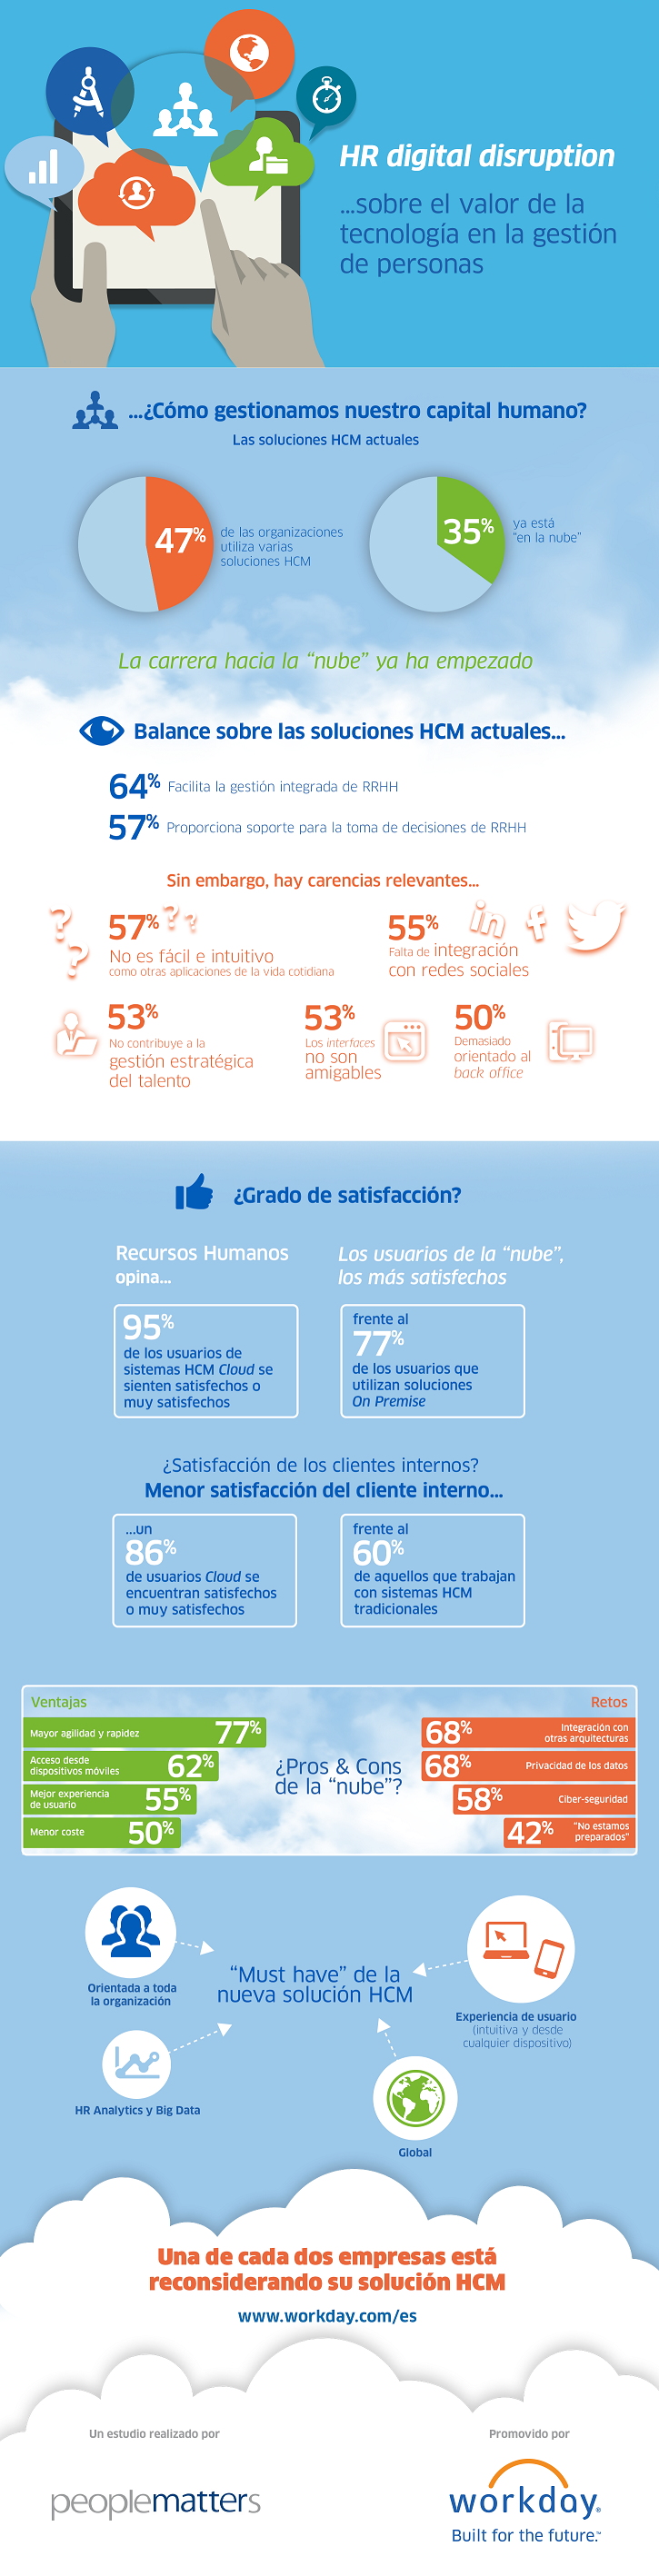 wday_infographic_people_matters_es